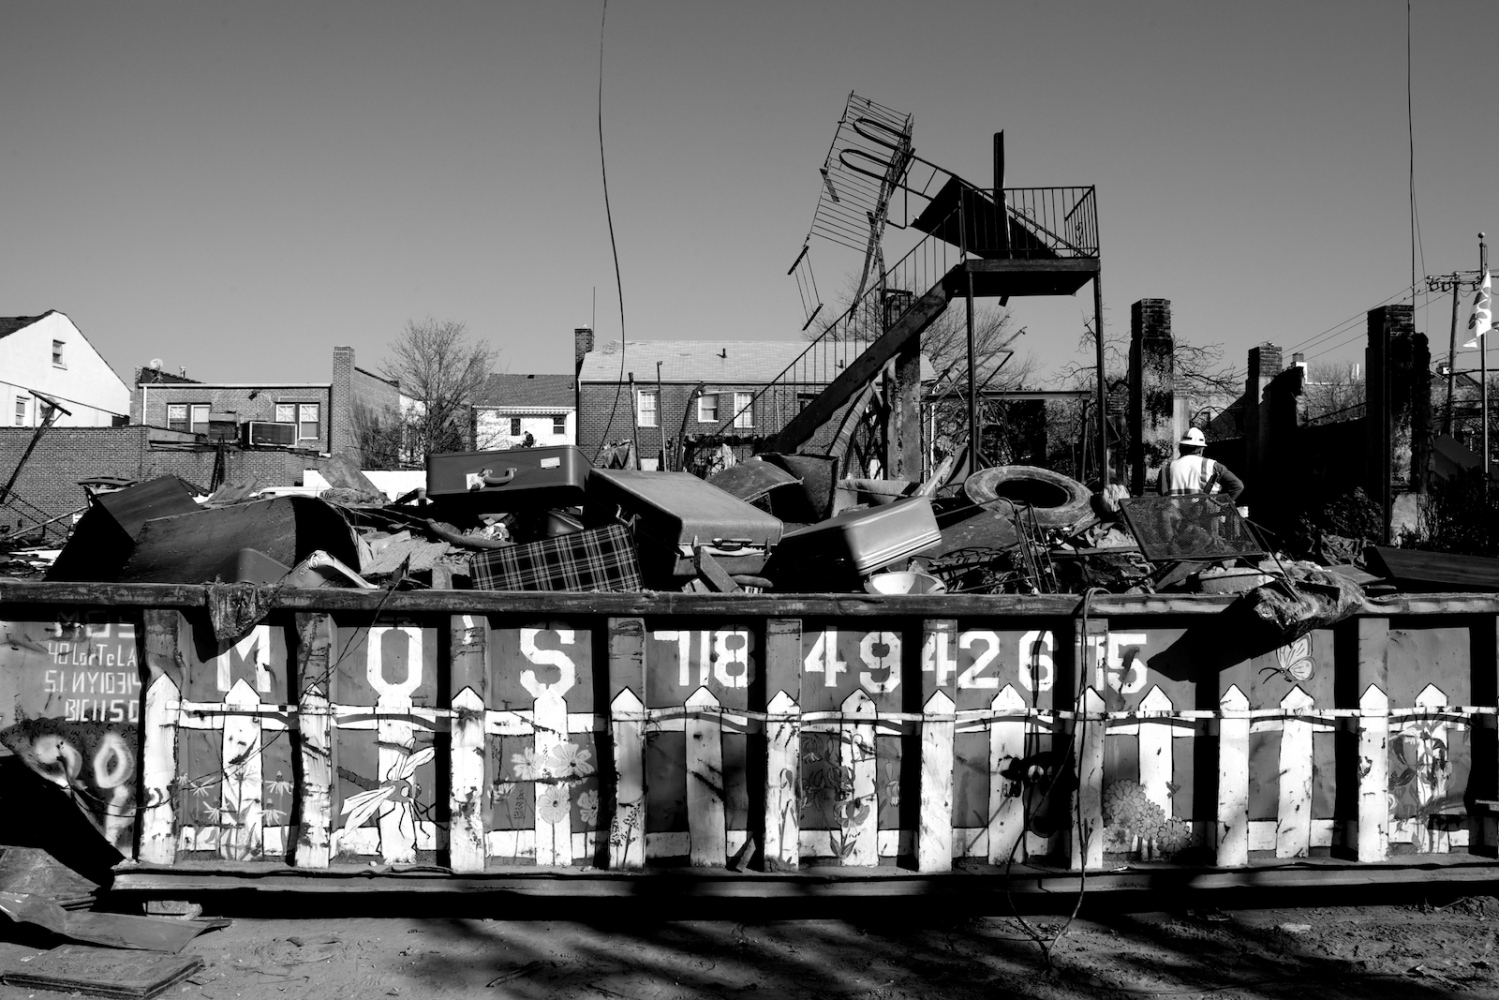 A dumpster that contains personal effects, furniture and other possessions from people's homes that were devastated by Hurricane Sandy sits in Breezy Point, Queens, N.Y. on Nov. 11, 2012. The tiny beachfront town, with many firefighters as its residents, was told to evacuate before Hurricane Sandy hit New York. Rising sea water made its way into electrical systems causing a fire that destroyed more than 120 homes.